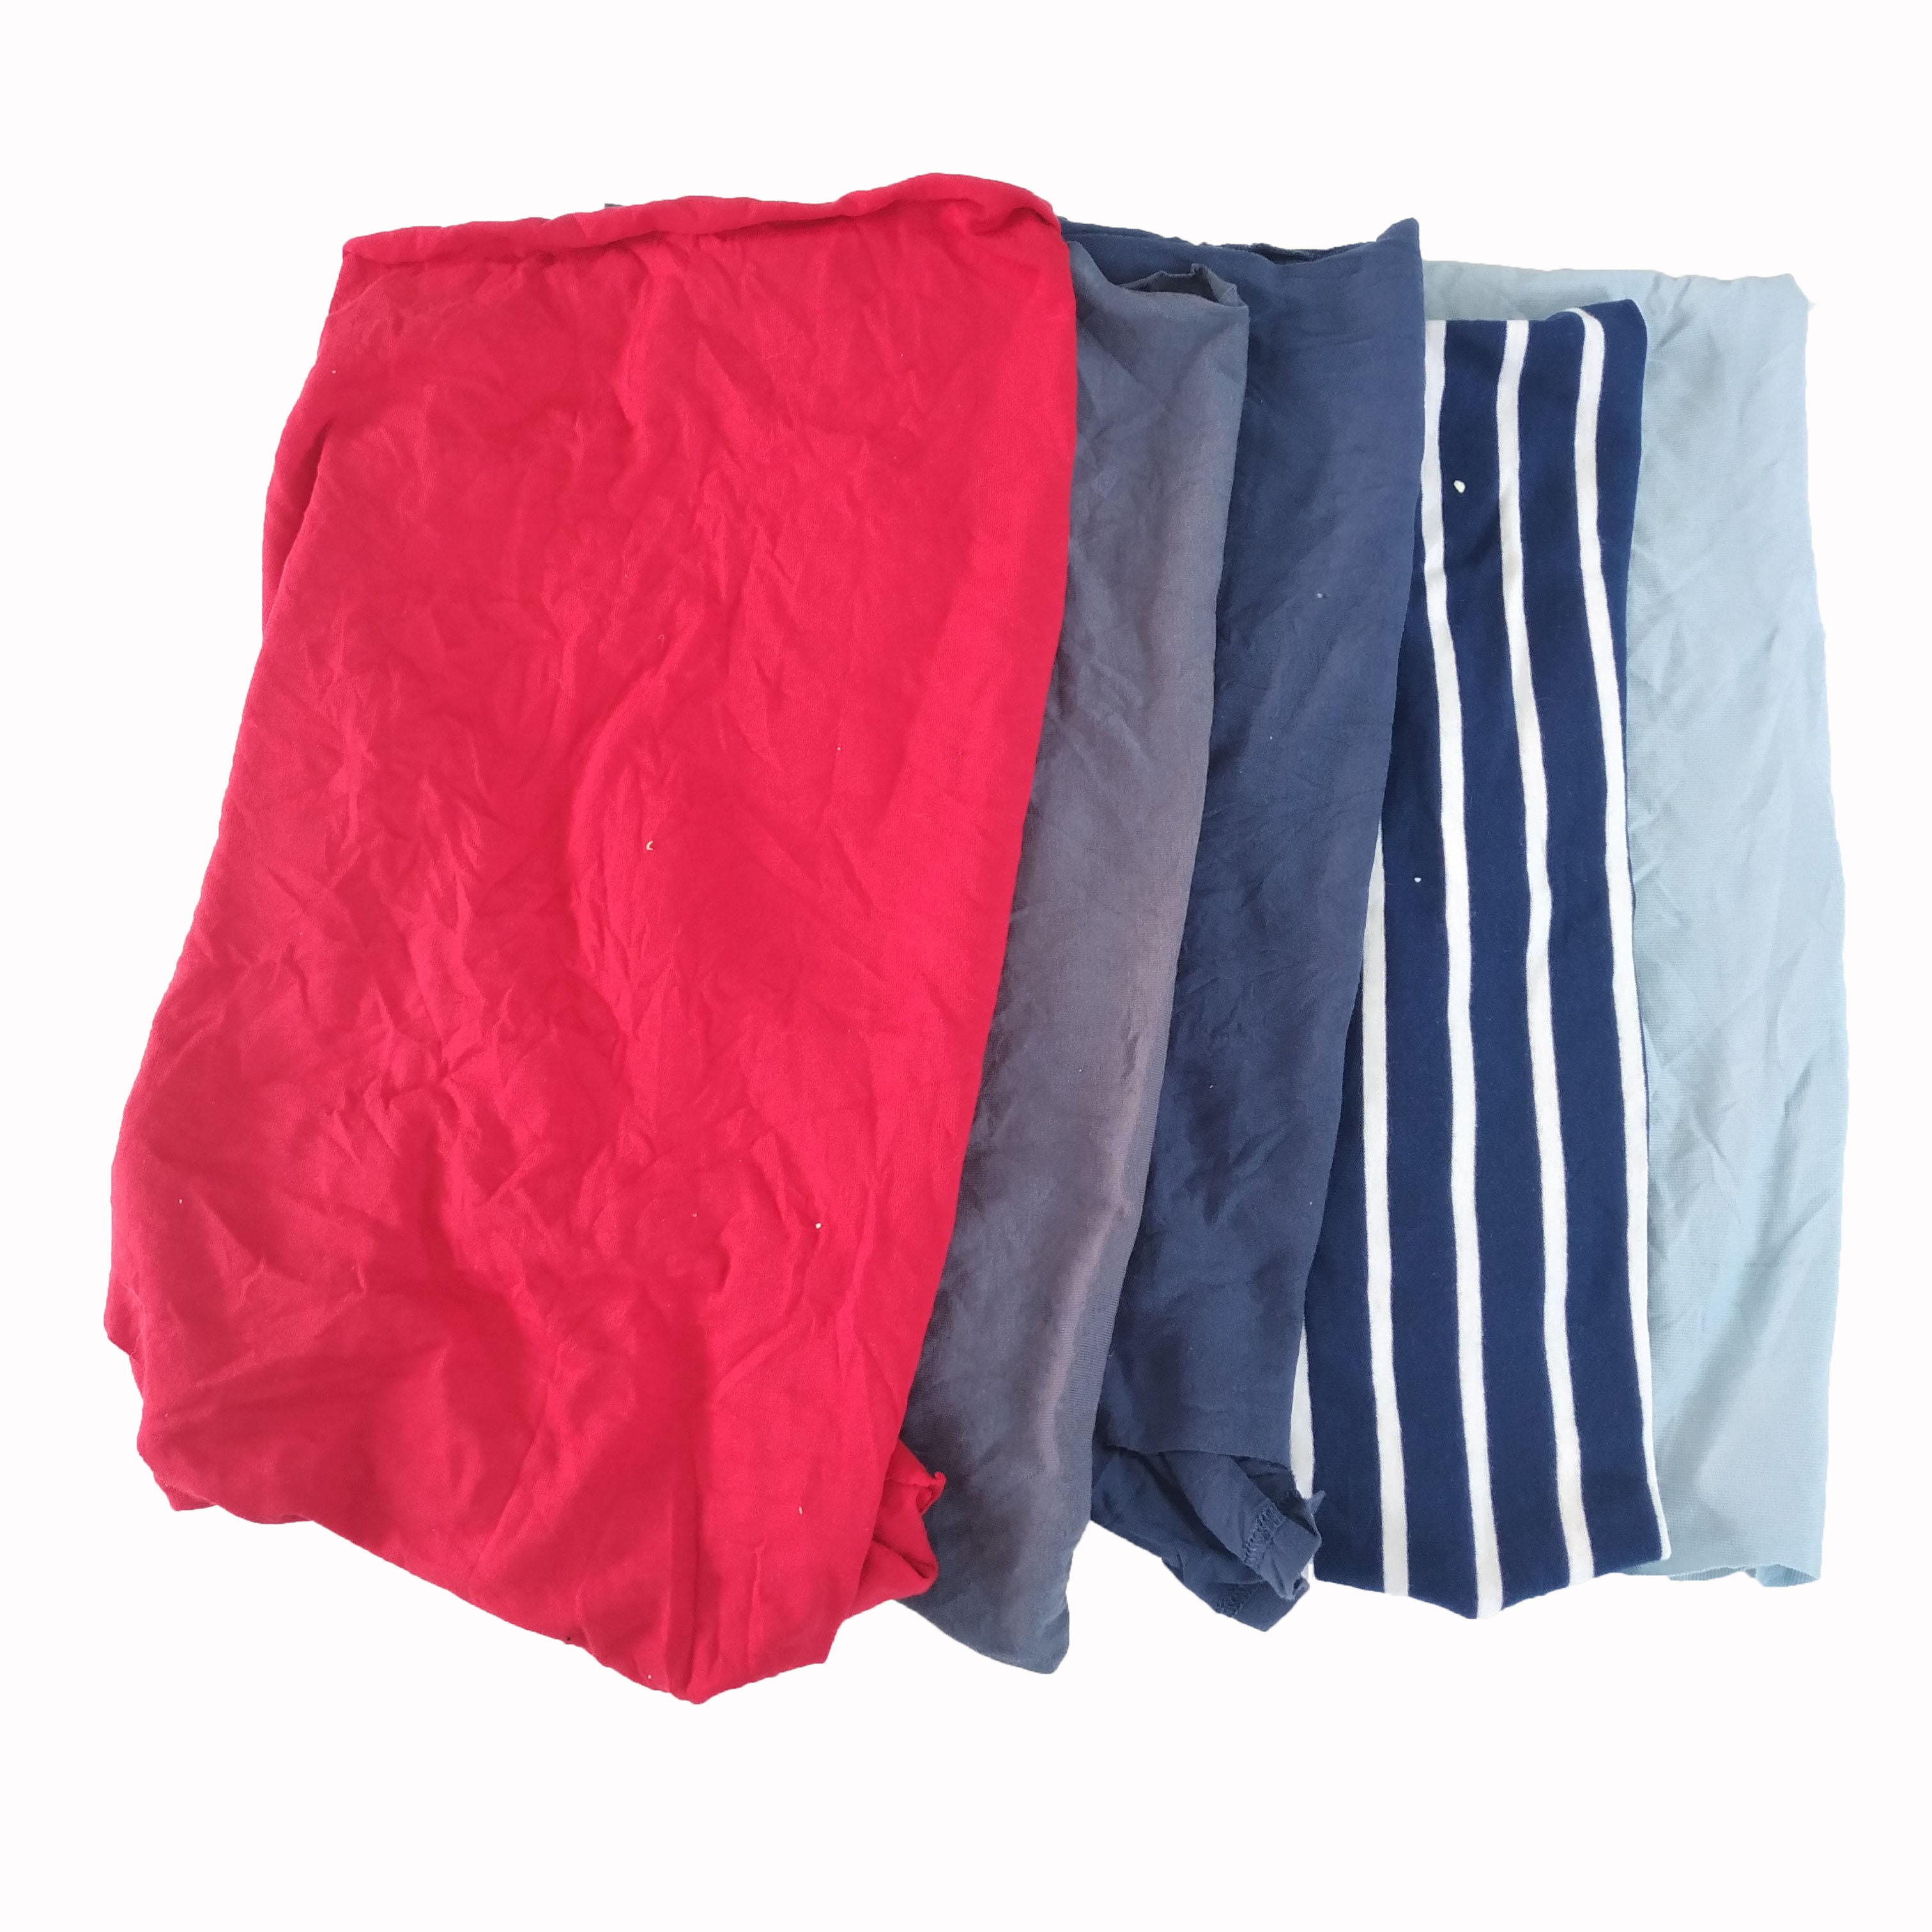 Top quality fabric cut pieces cotton yarn waste industrial cleaning wiping rags